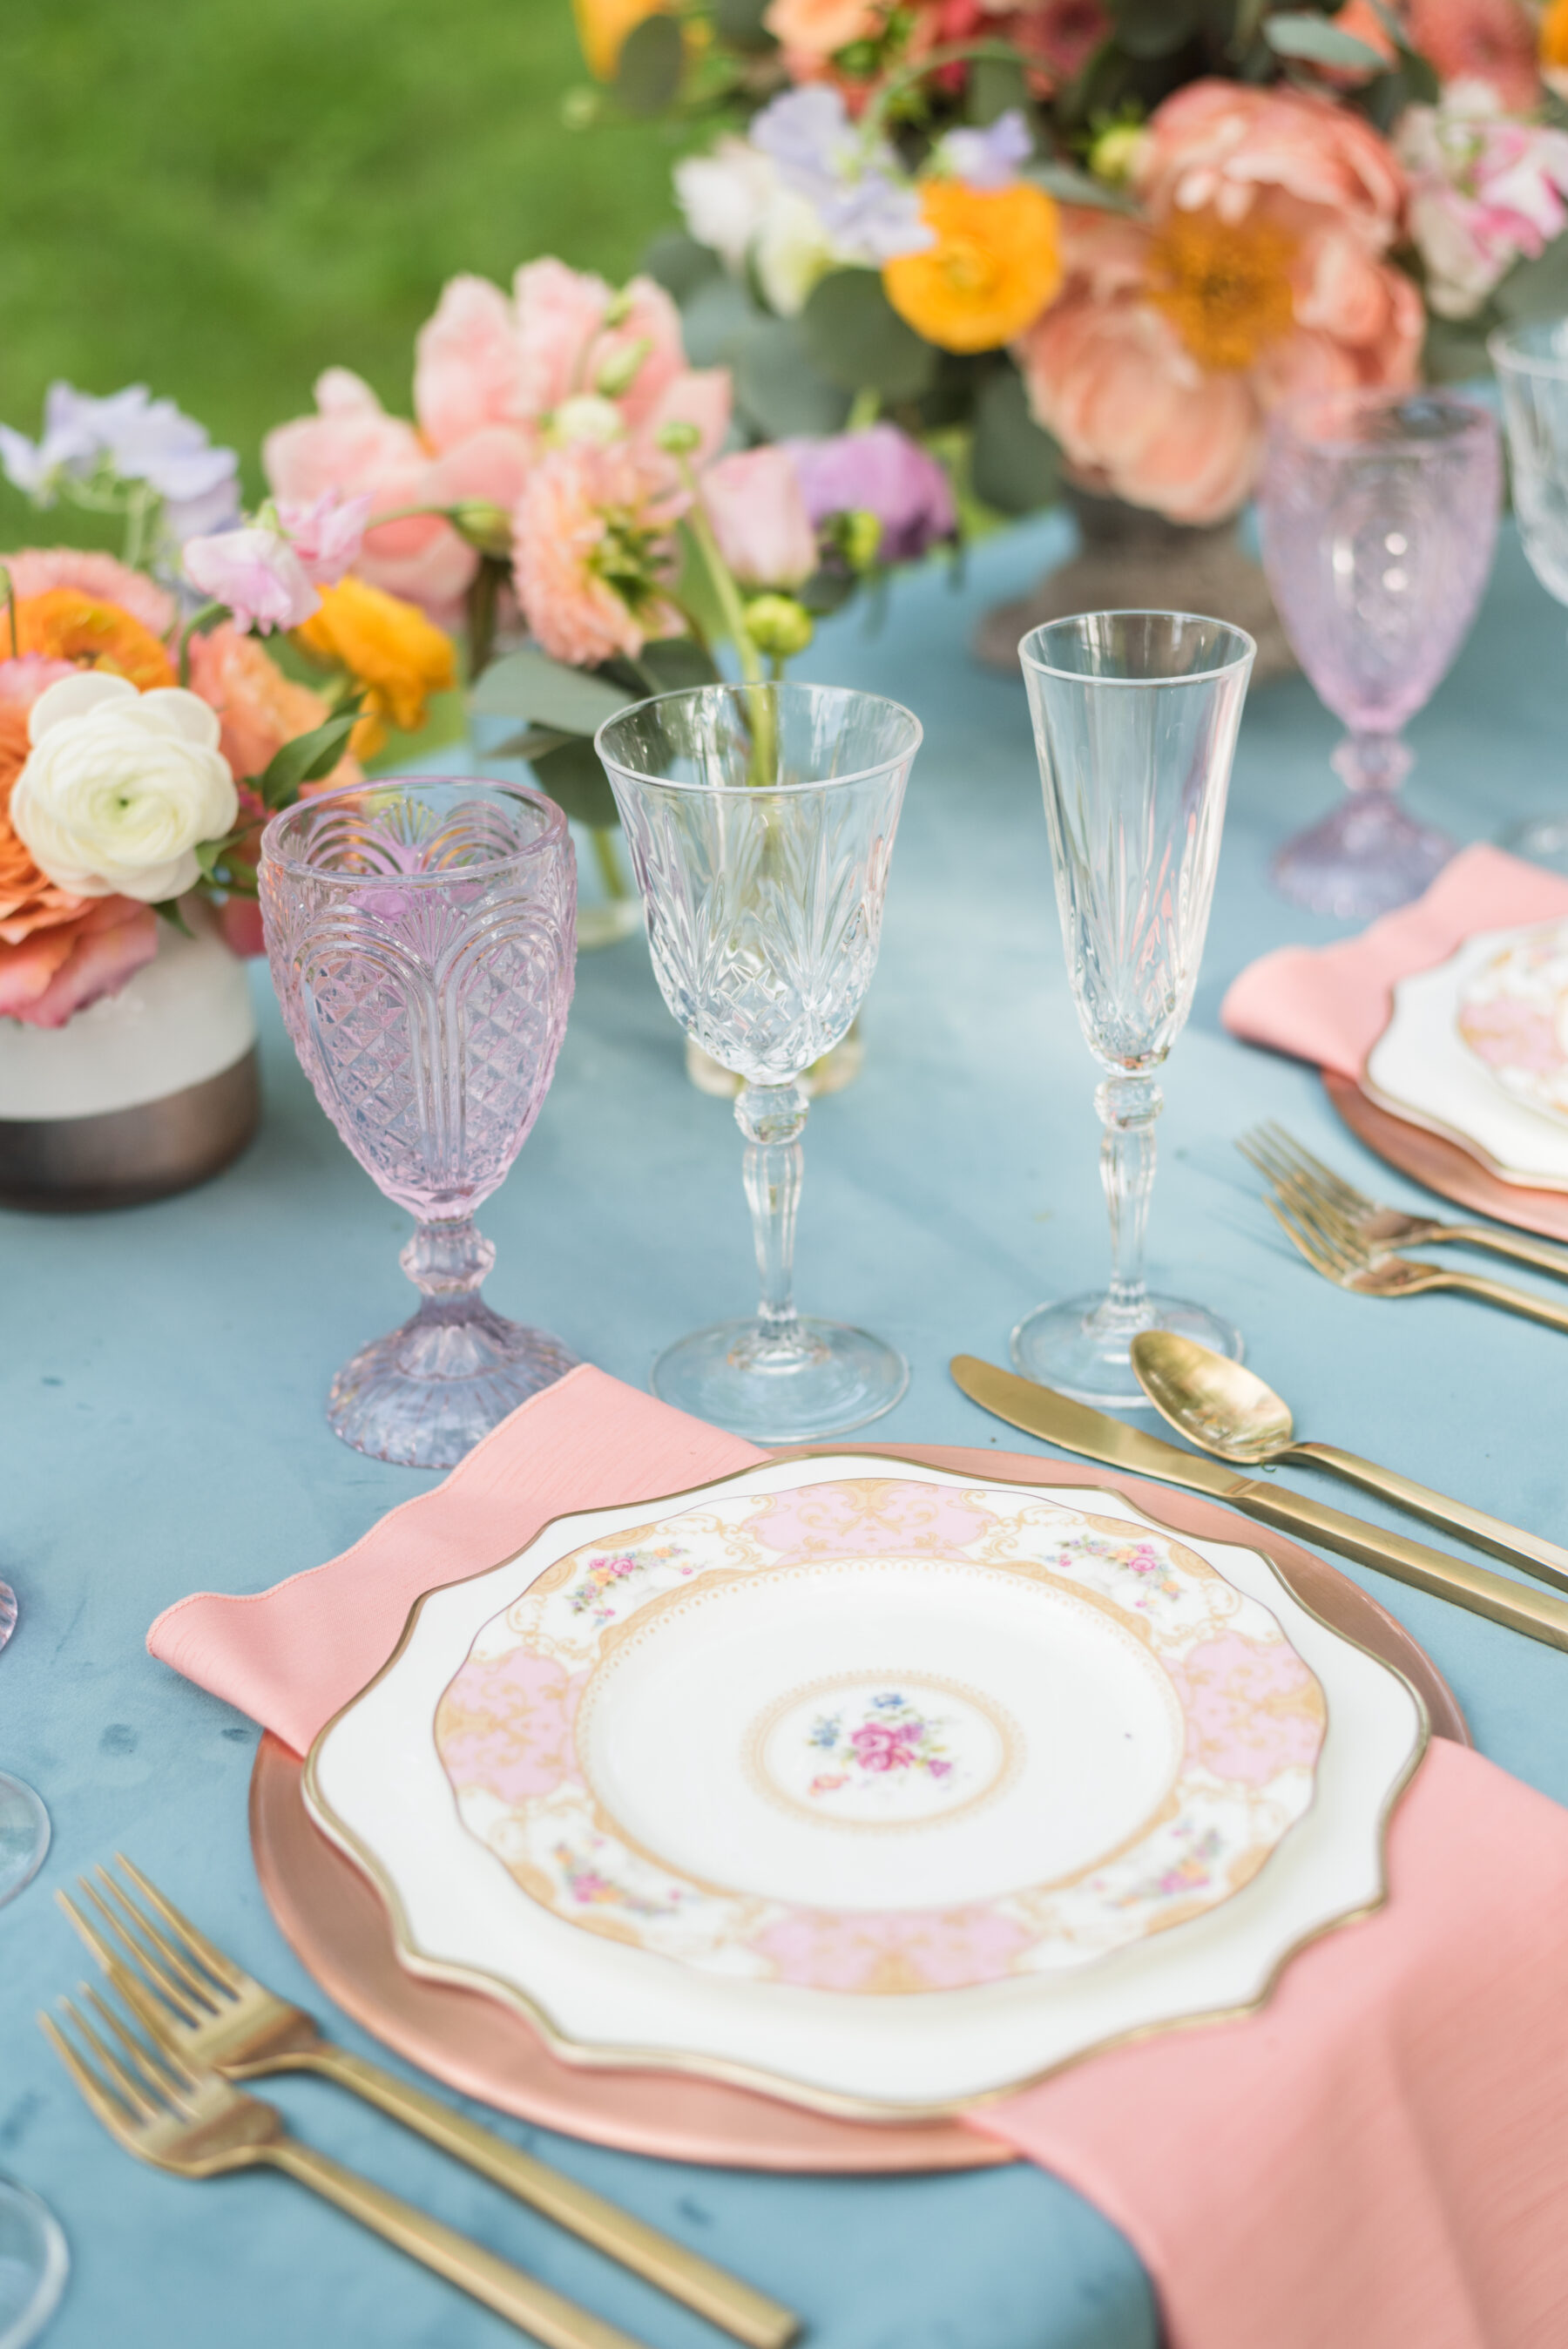 Pink and white floral wedding china